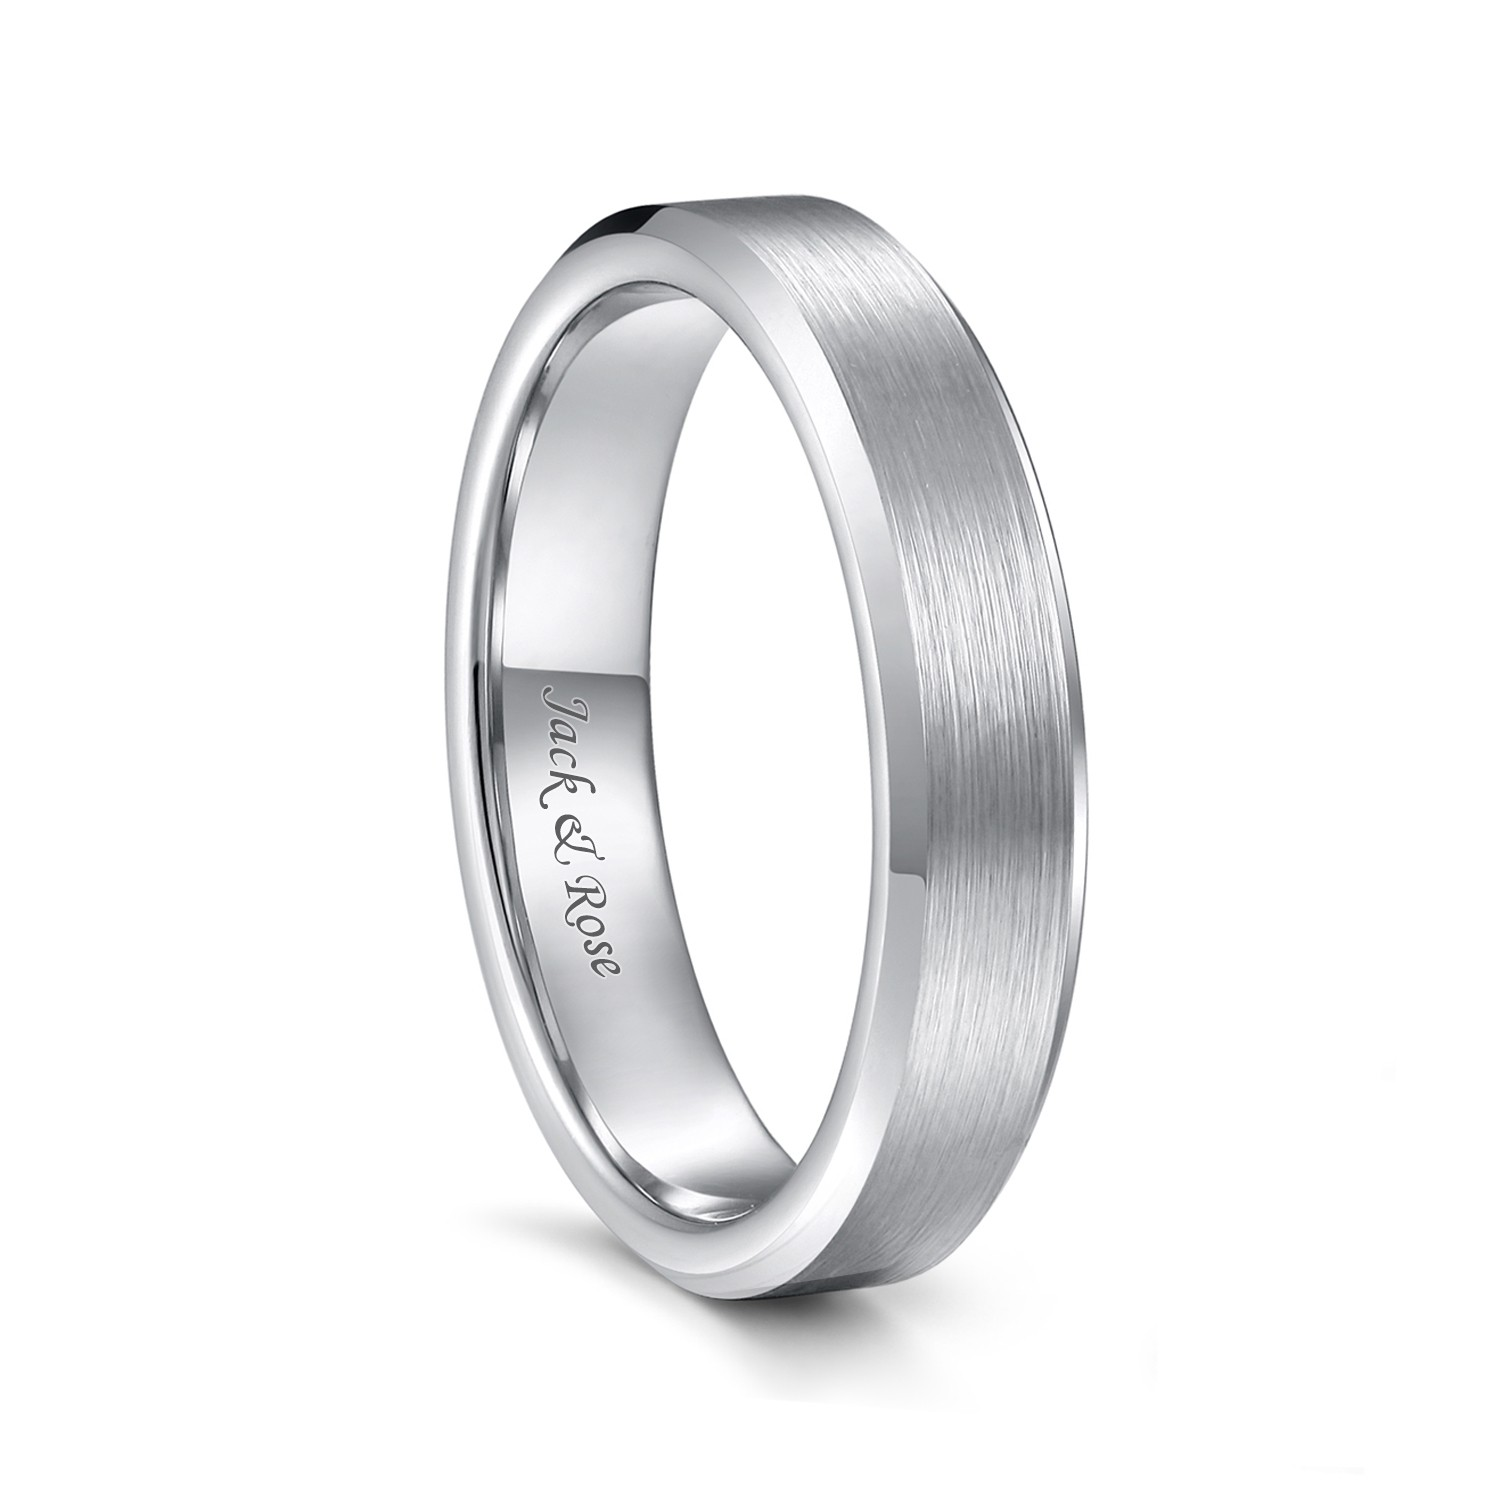 Silver Tungsten Wedding Bands for Men Women Brushed Center and Beveled Edge  - 9mm - 9mm